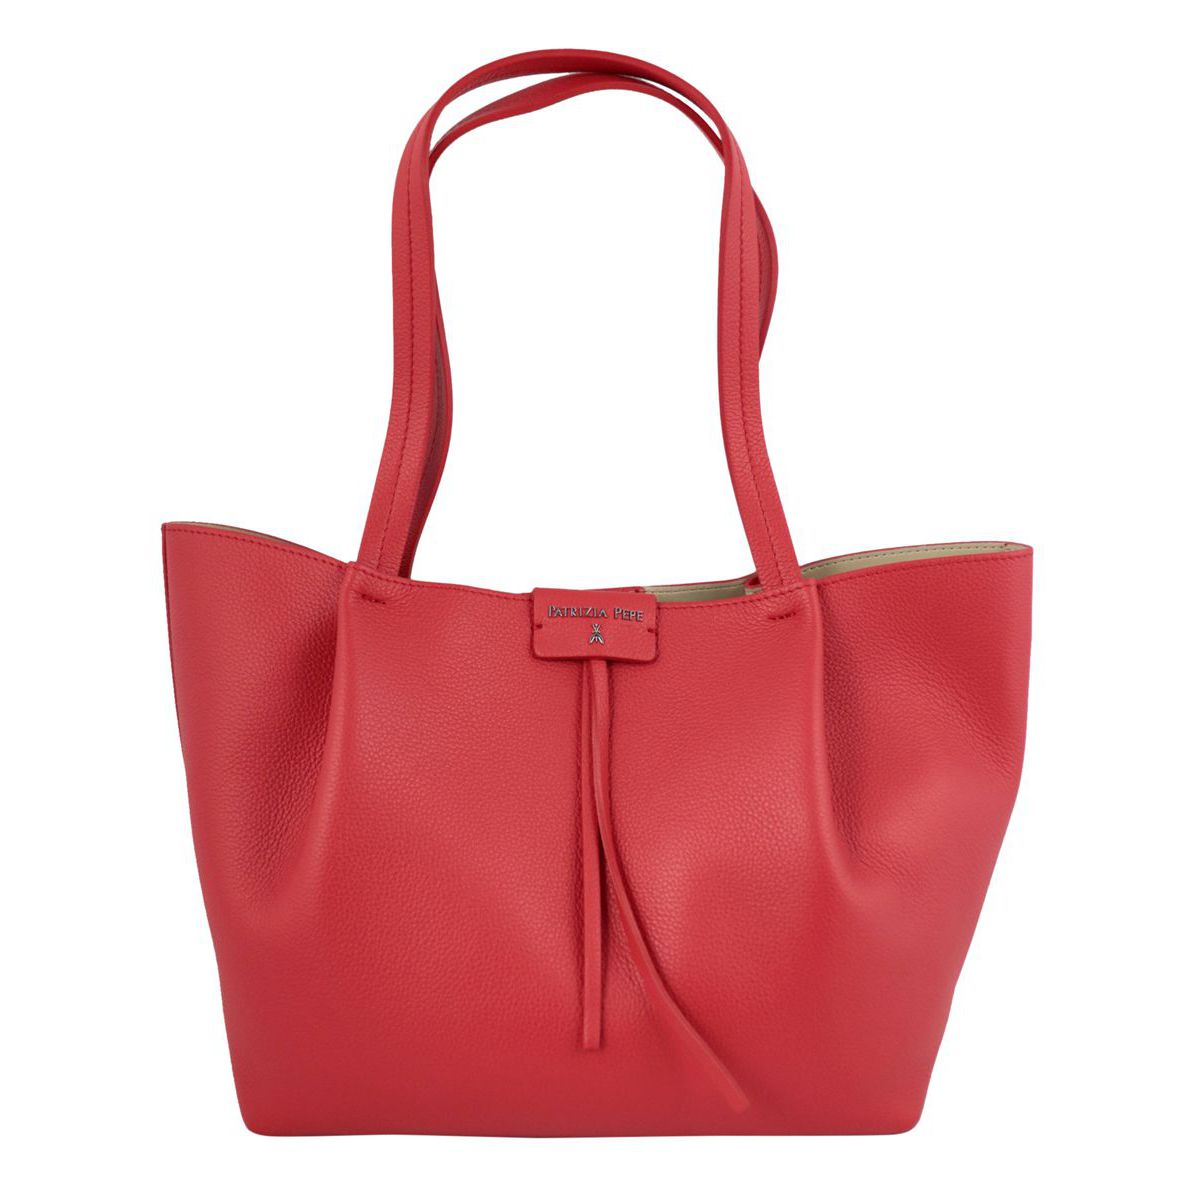 Shopper bag in cowhide leather with logo Red Patrizia Pepe